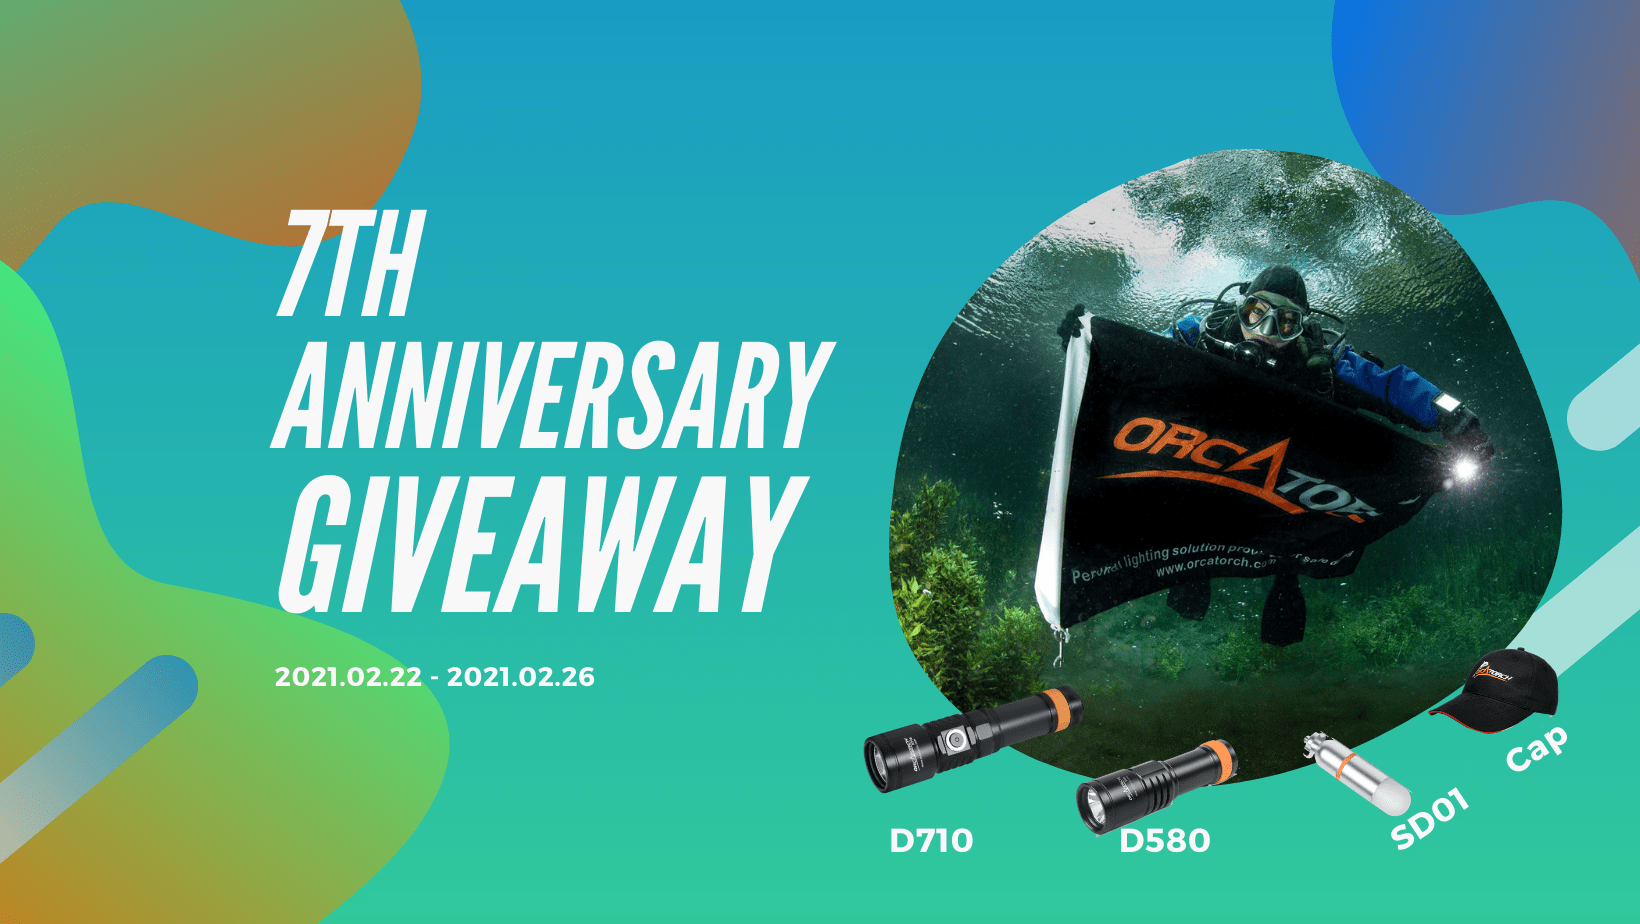 7 PRIZES! one D710 dive light, one D580 dive light, two SD01 dive beacons, and three OrcaTorch caps Giveaway Image